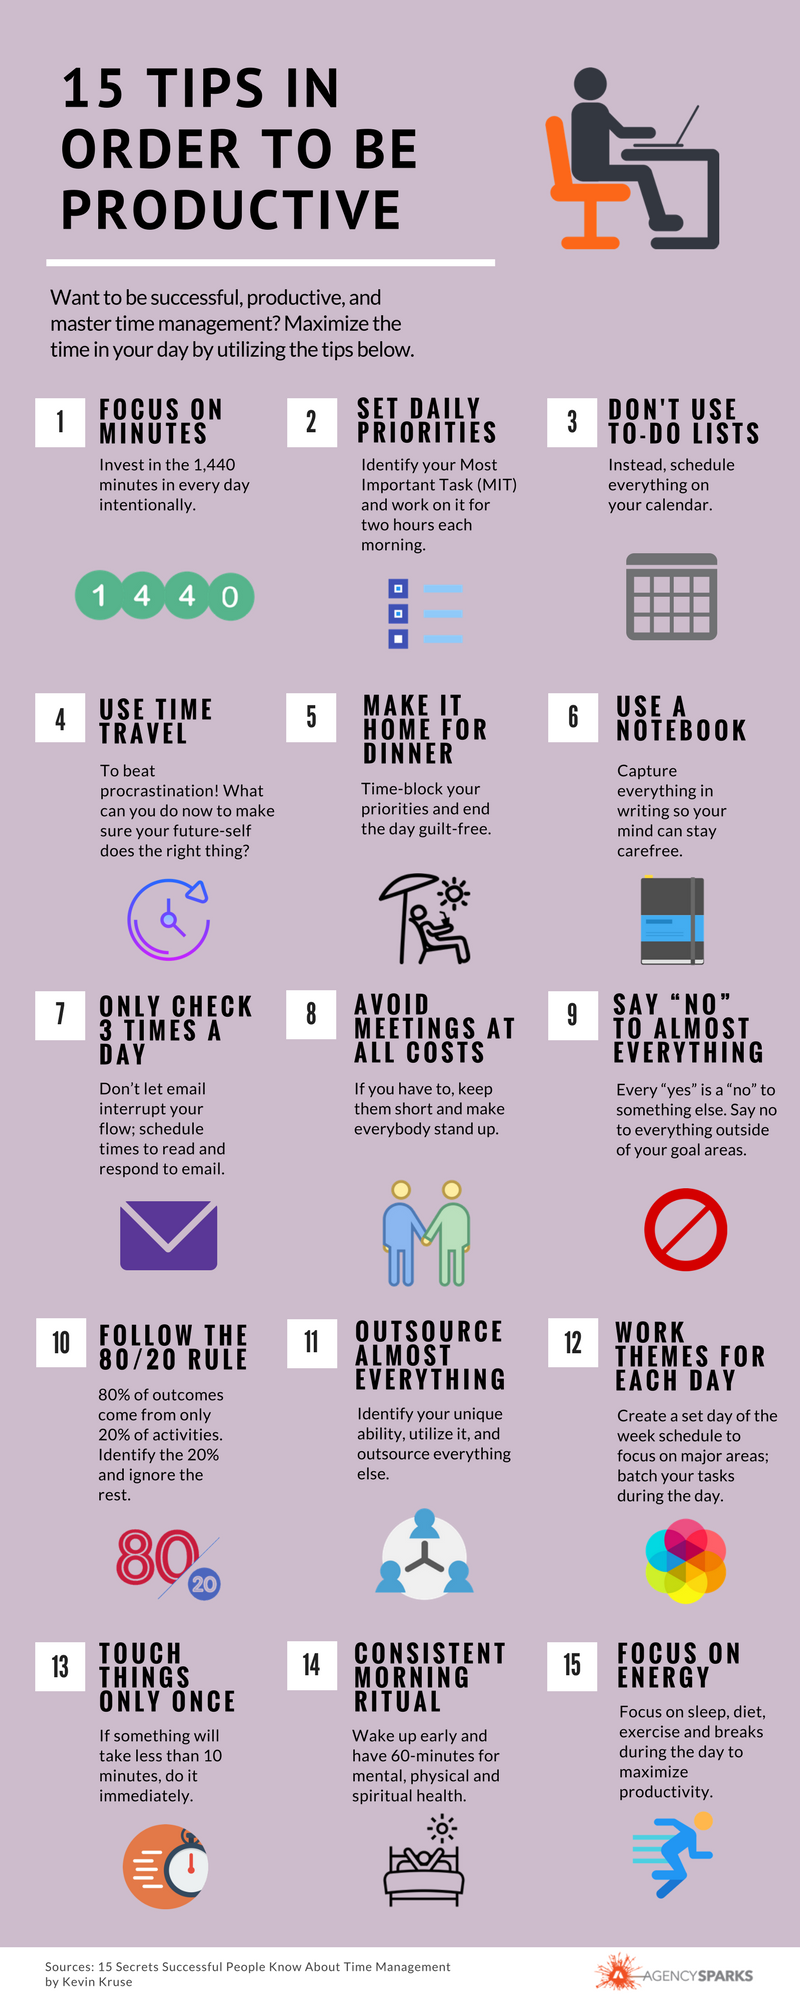 In order to be more productive, look at these 15 tips for productivity.